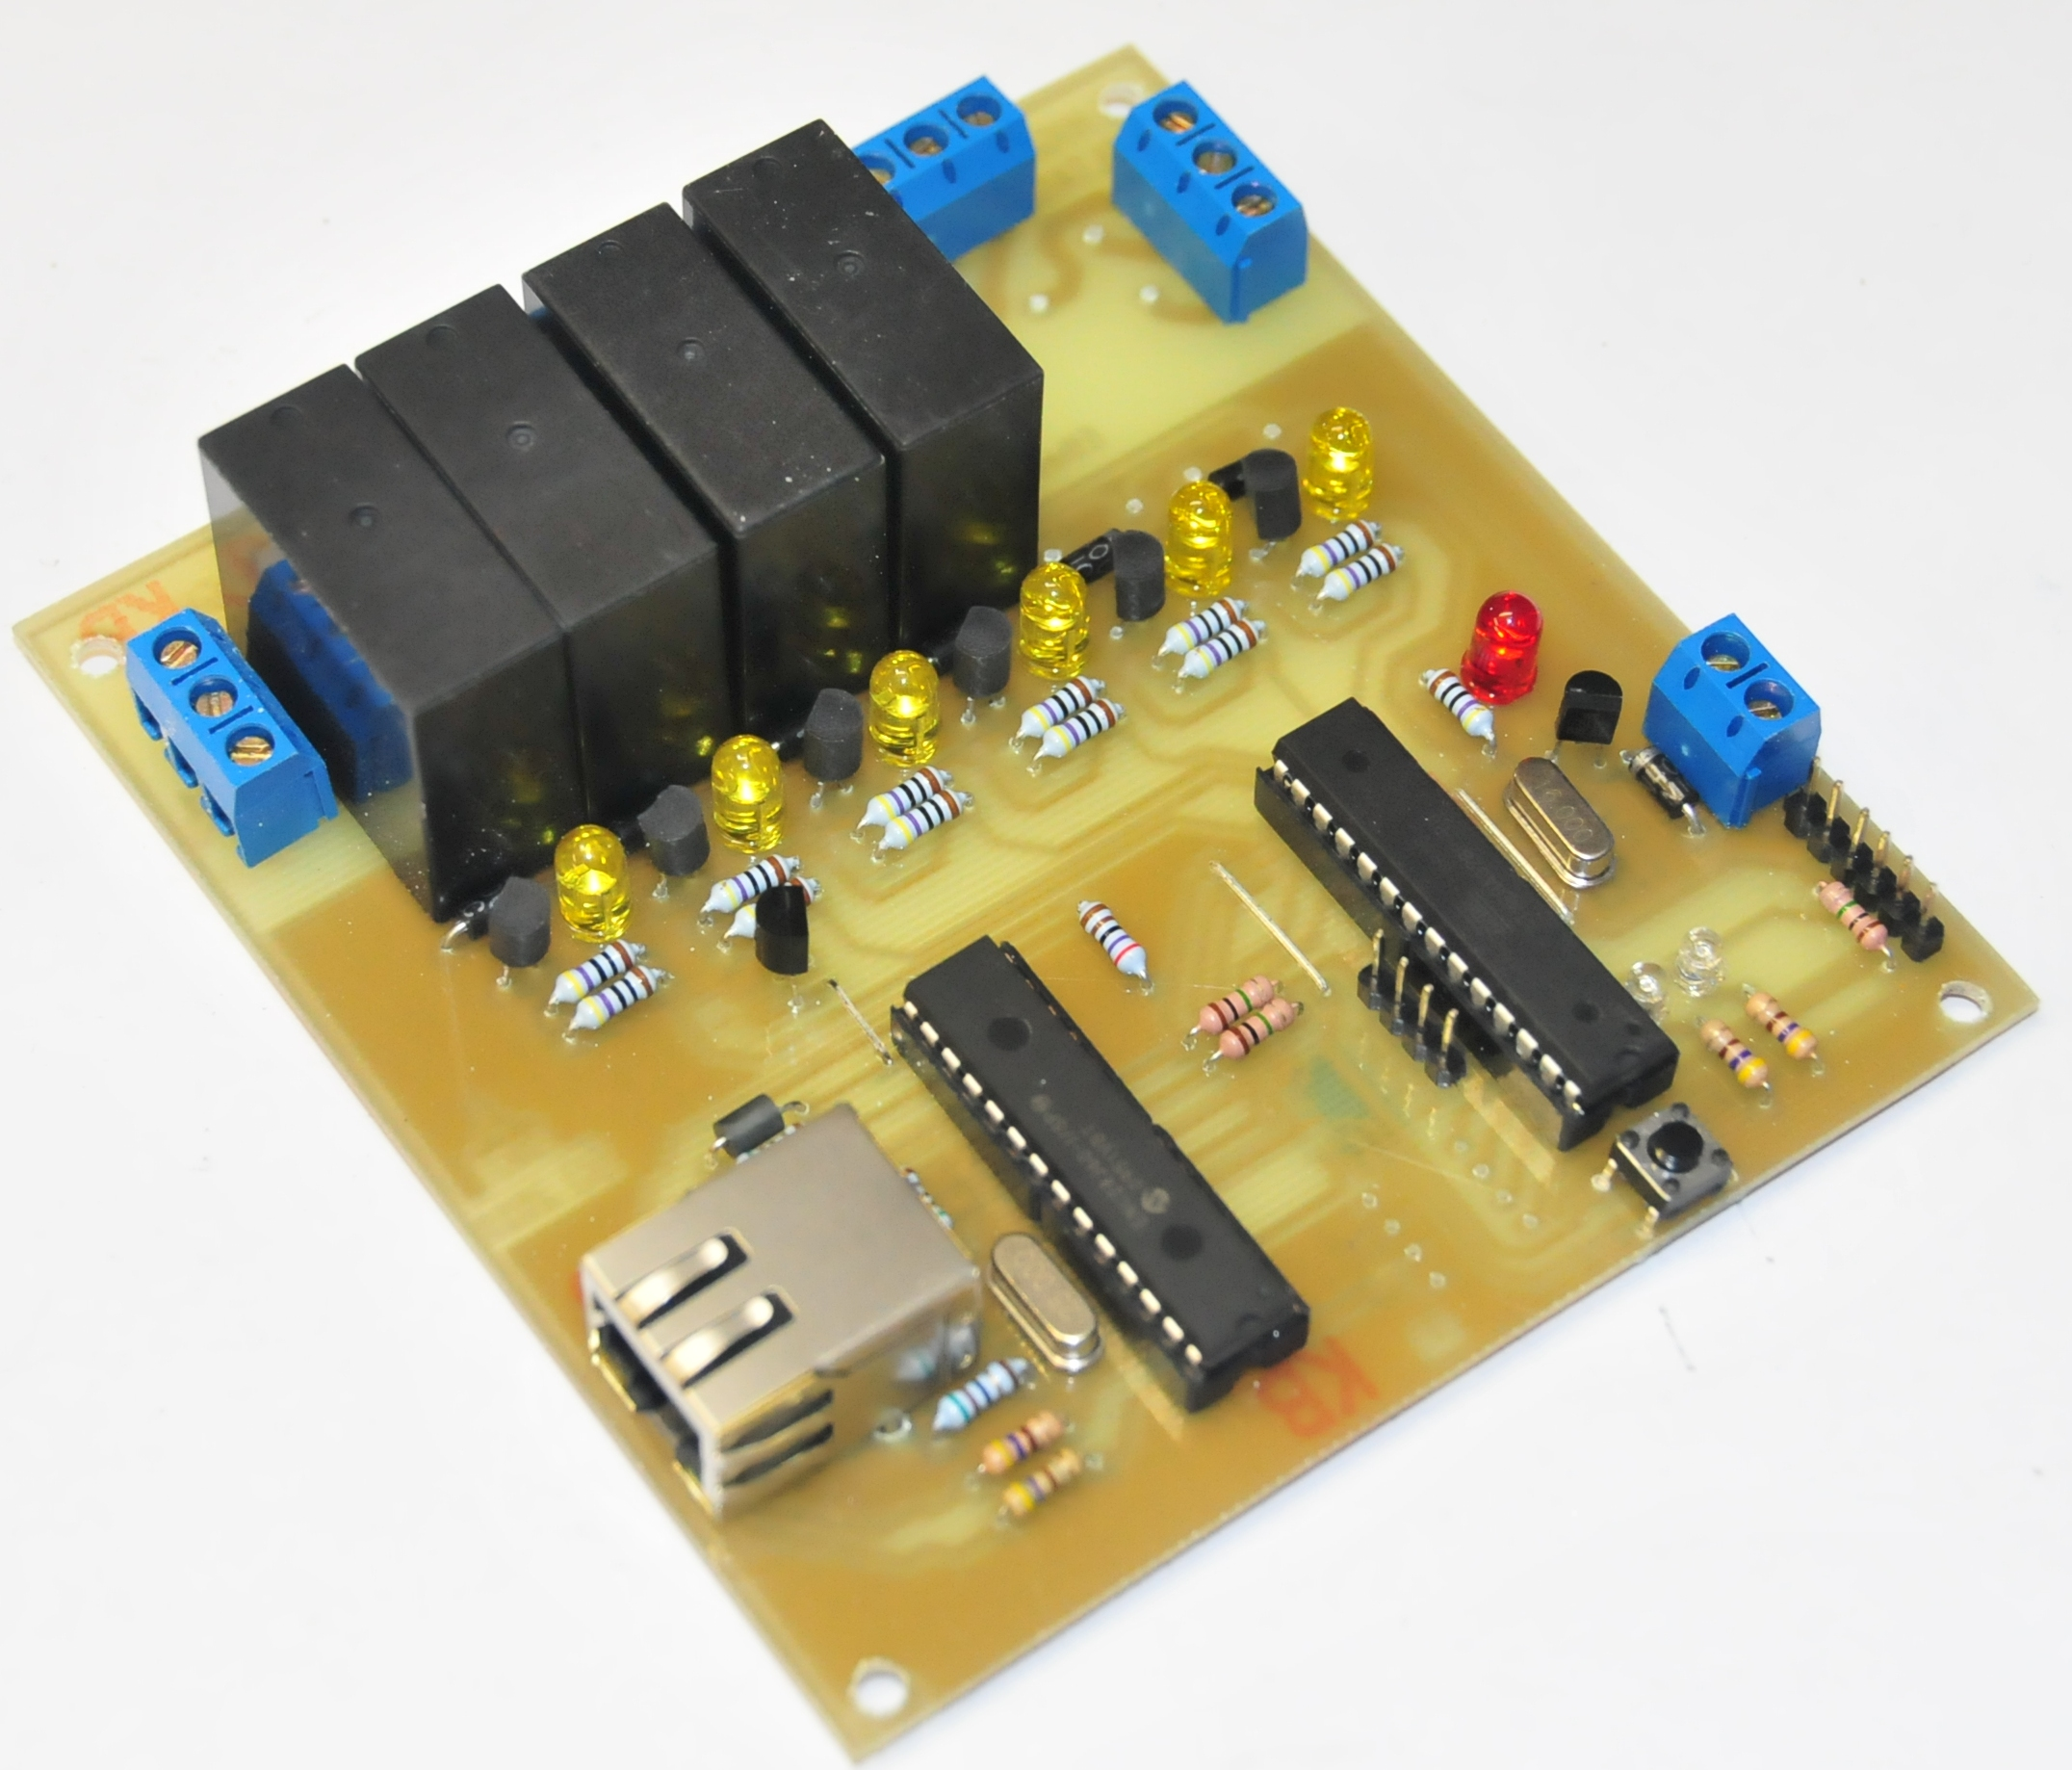 Picture of A Remotely Programable Relay Controller (Christmas Lights or Home Automation Controller)